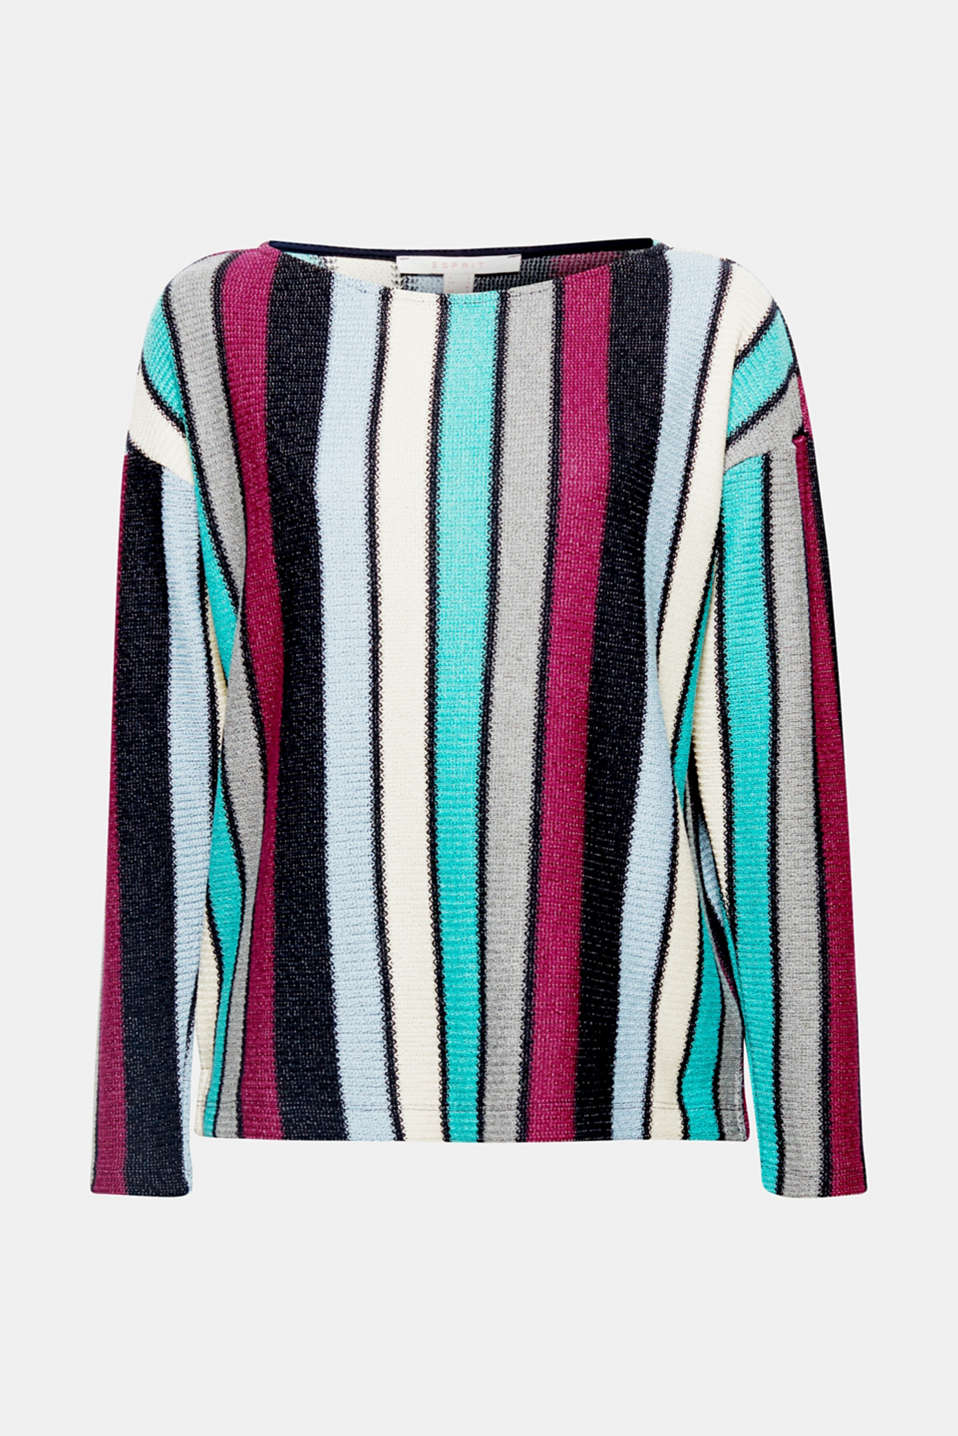 This sweatshirt comes in a casual, elegant look. Its multi-coloured vertical stripes are accentuated particularly beautifully by its linear design.